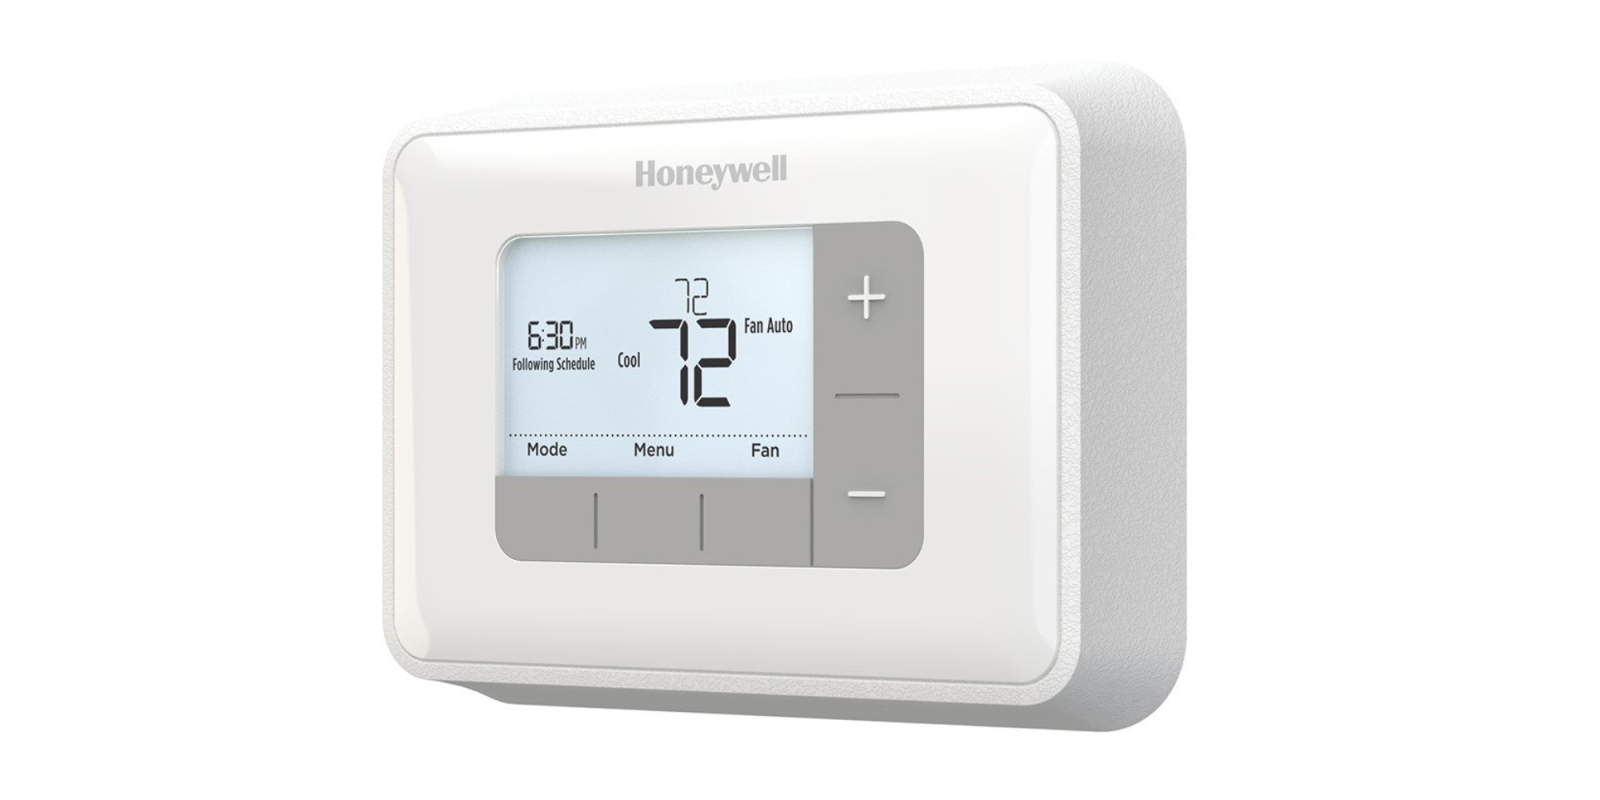 Score Honeywell's 5-2 Scheduling Programmable Thermostat at a new Amazon low of $35